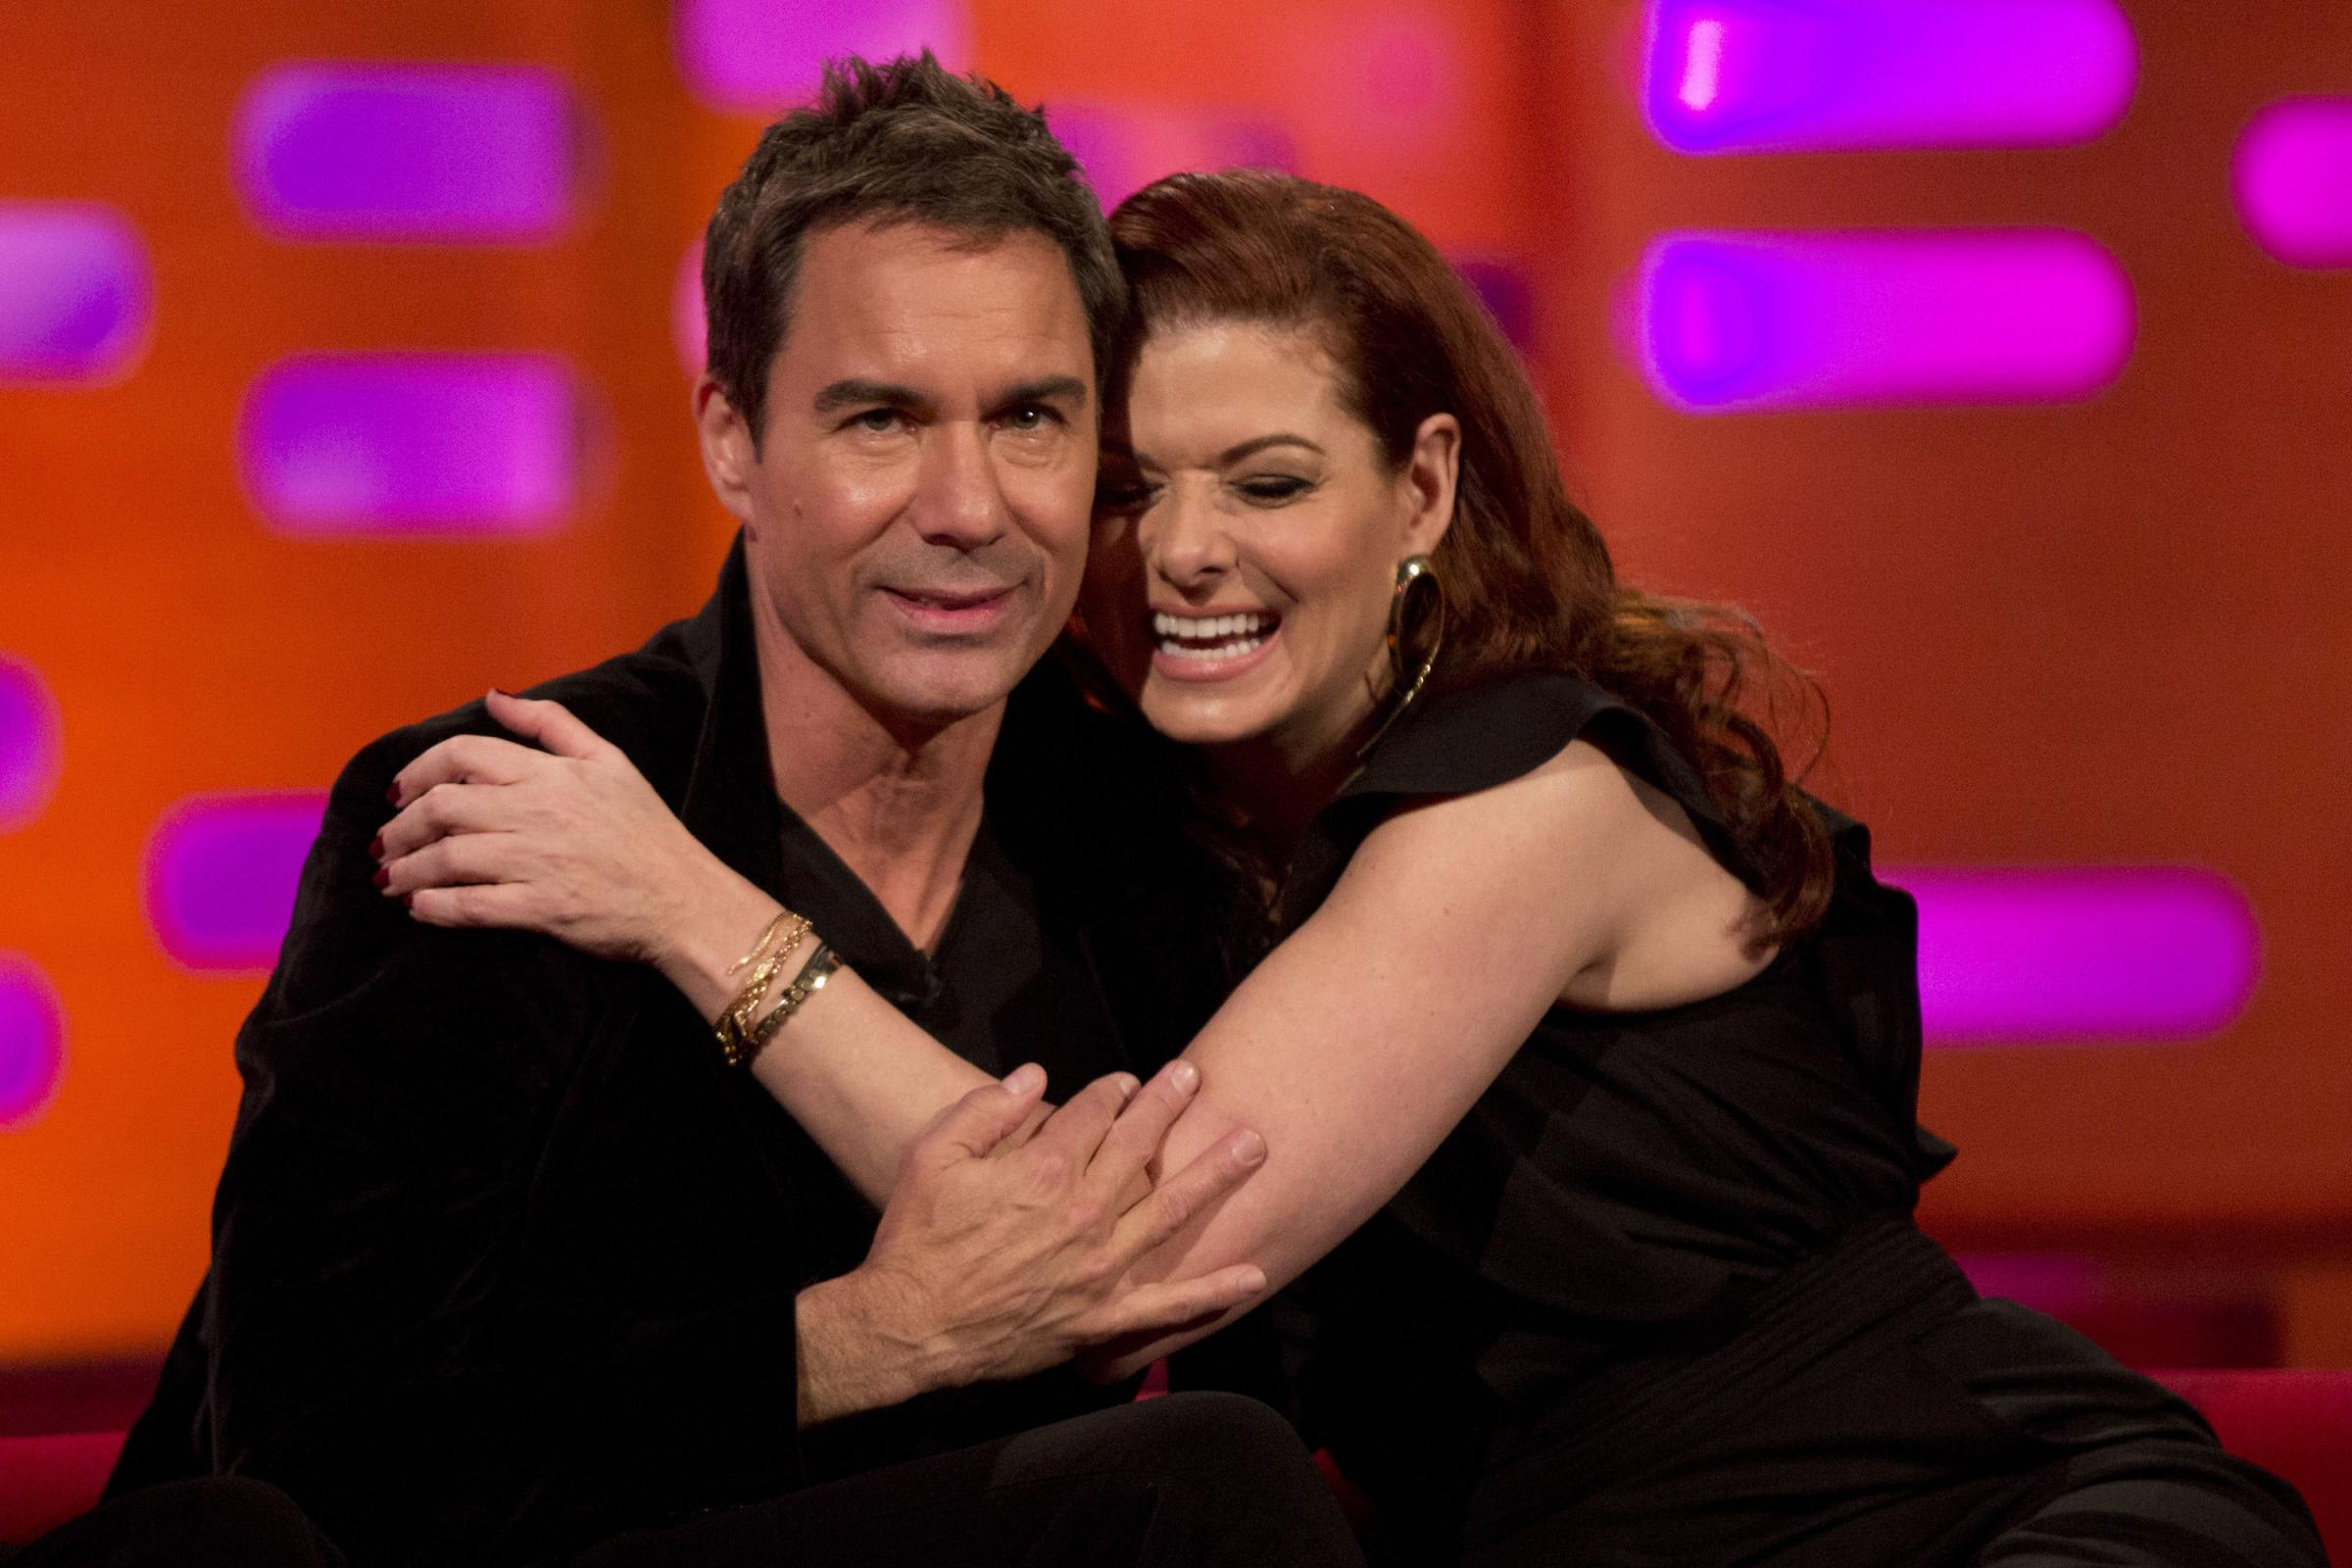 Eric McCormack and Debra Messing during filming of The Graham Norton Show at The London Studios (Isabel Infantes/PA)